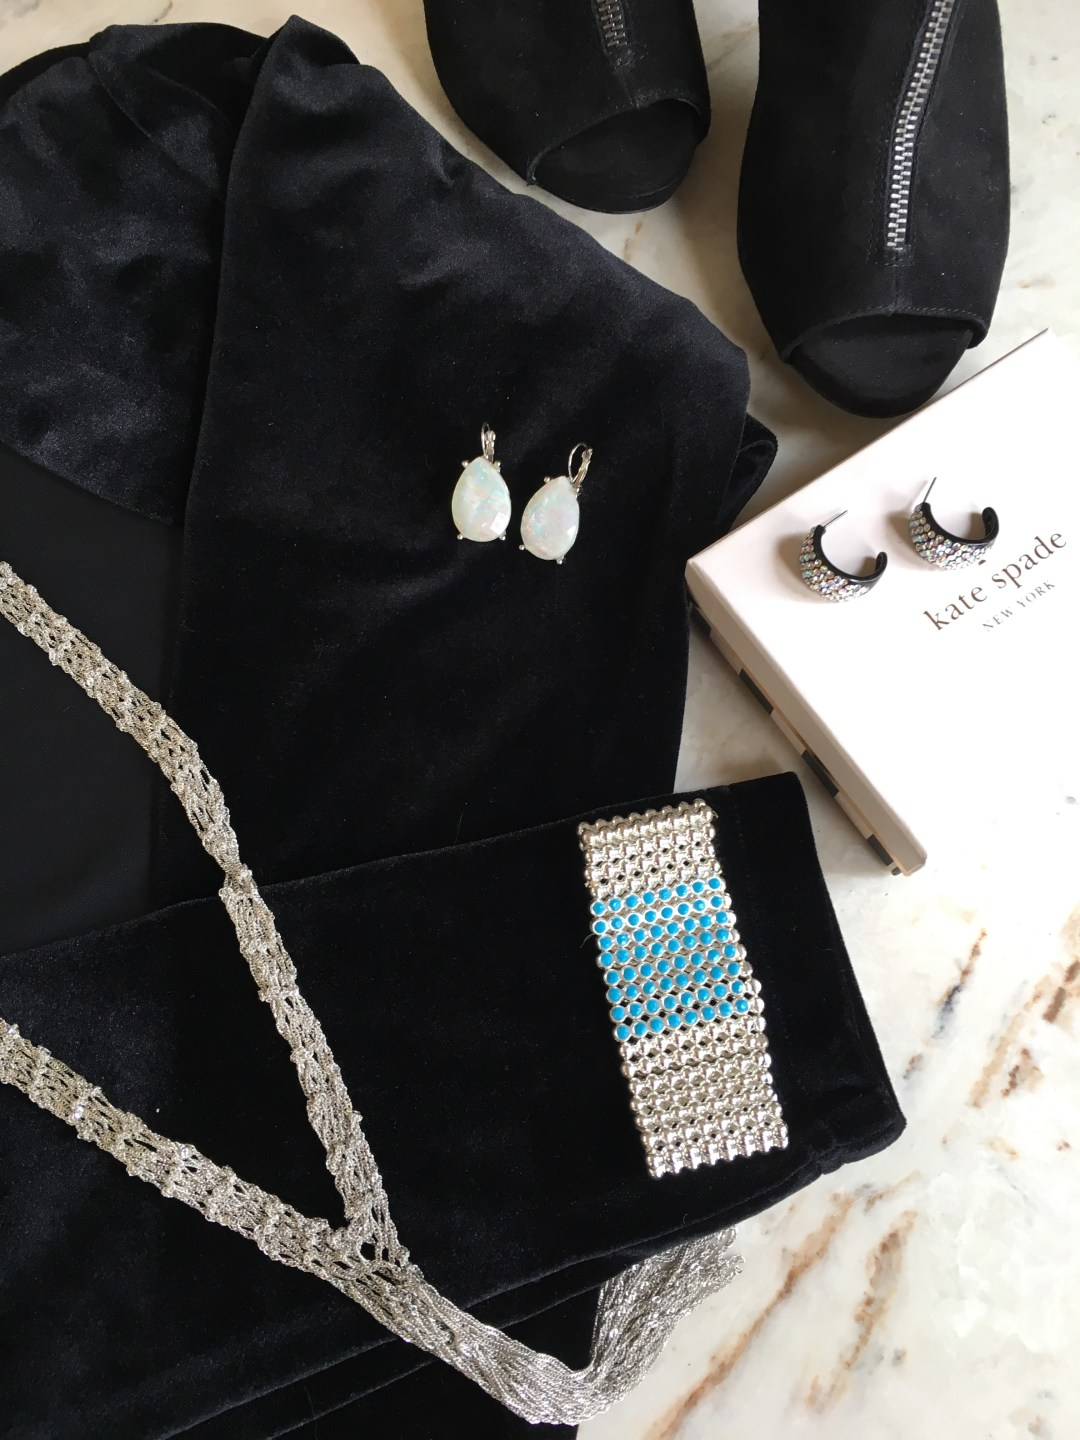 Earrings (top middle) are from Macy's.